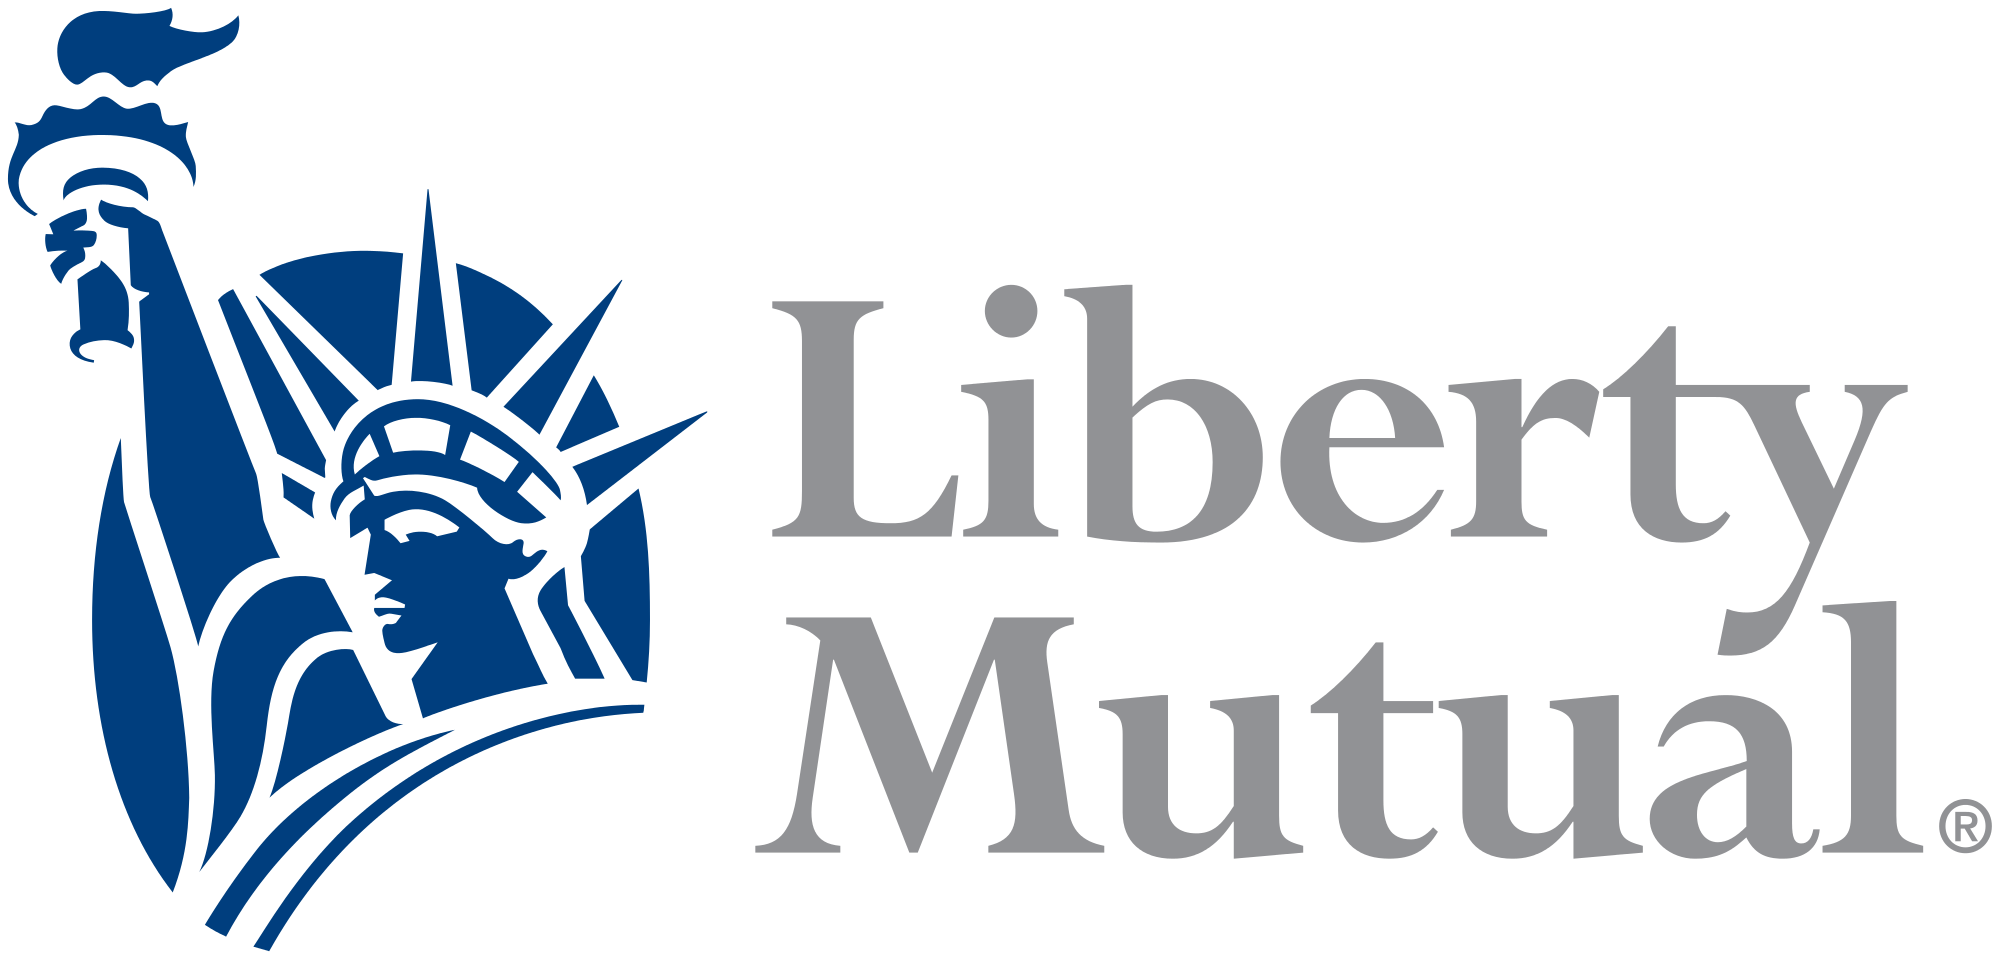 Liberty Mutual Quote Captivating Liberty Mutual Insurance Logos  Google Search  Insurance . Inspiration Design